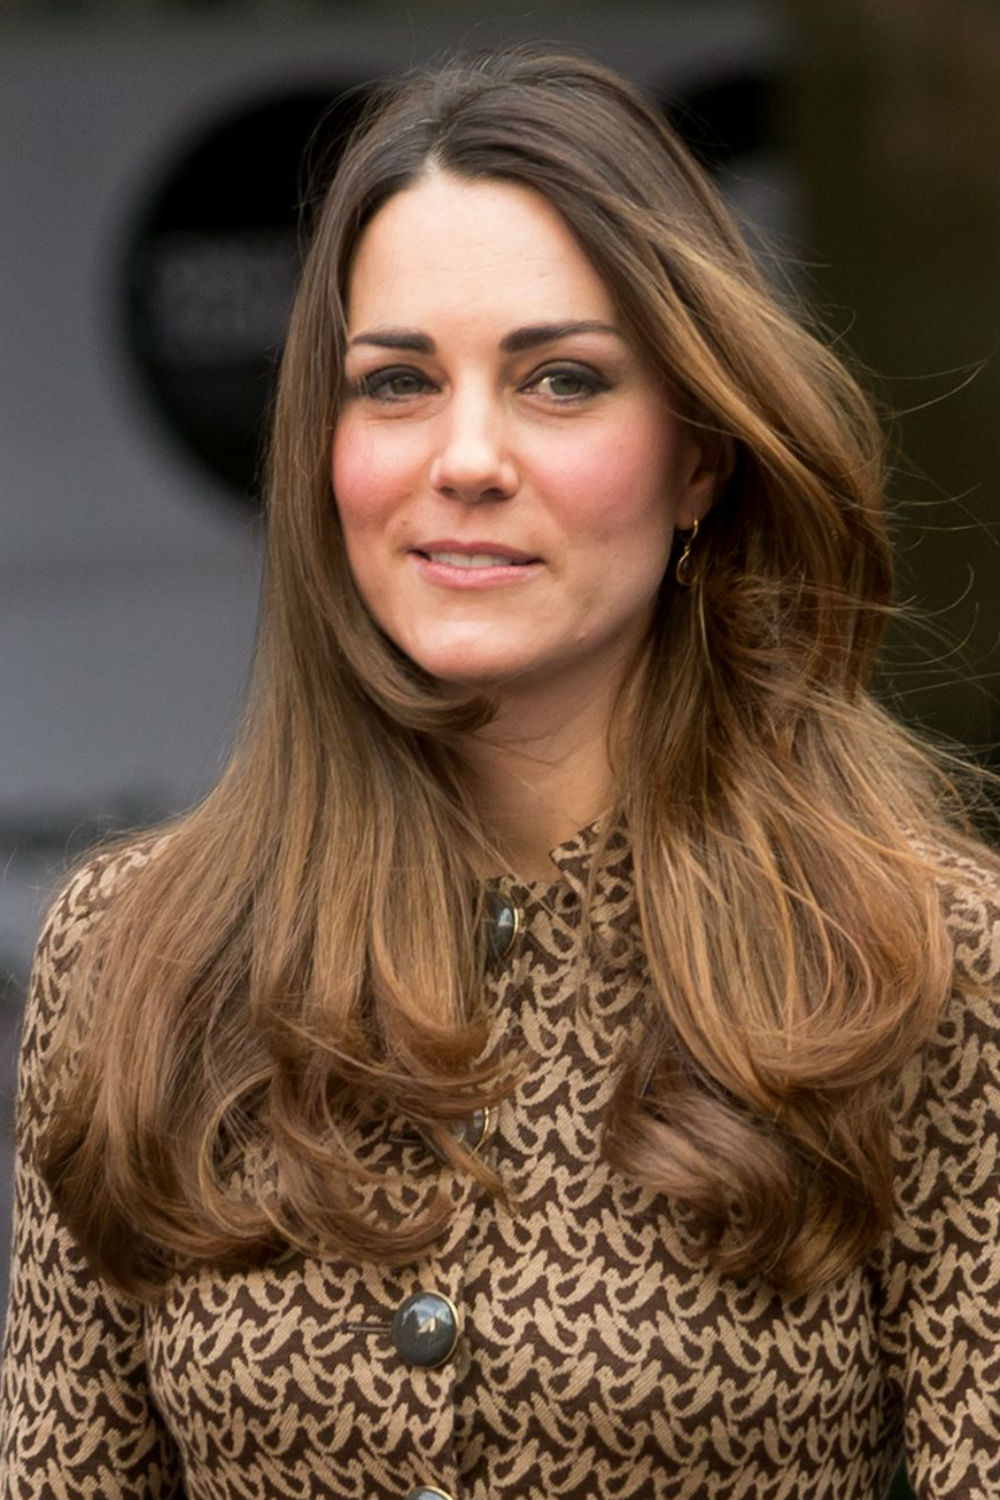 Kate Middletons Hairdresser Says Her Curls Are A Little Overdone